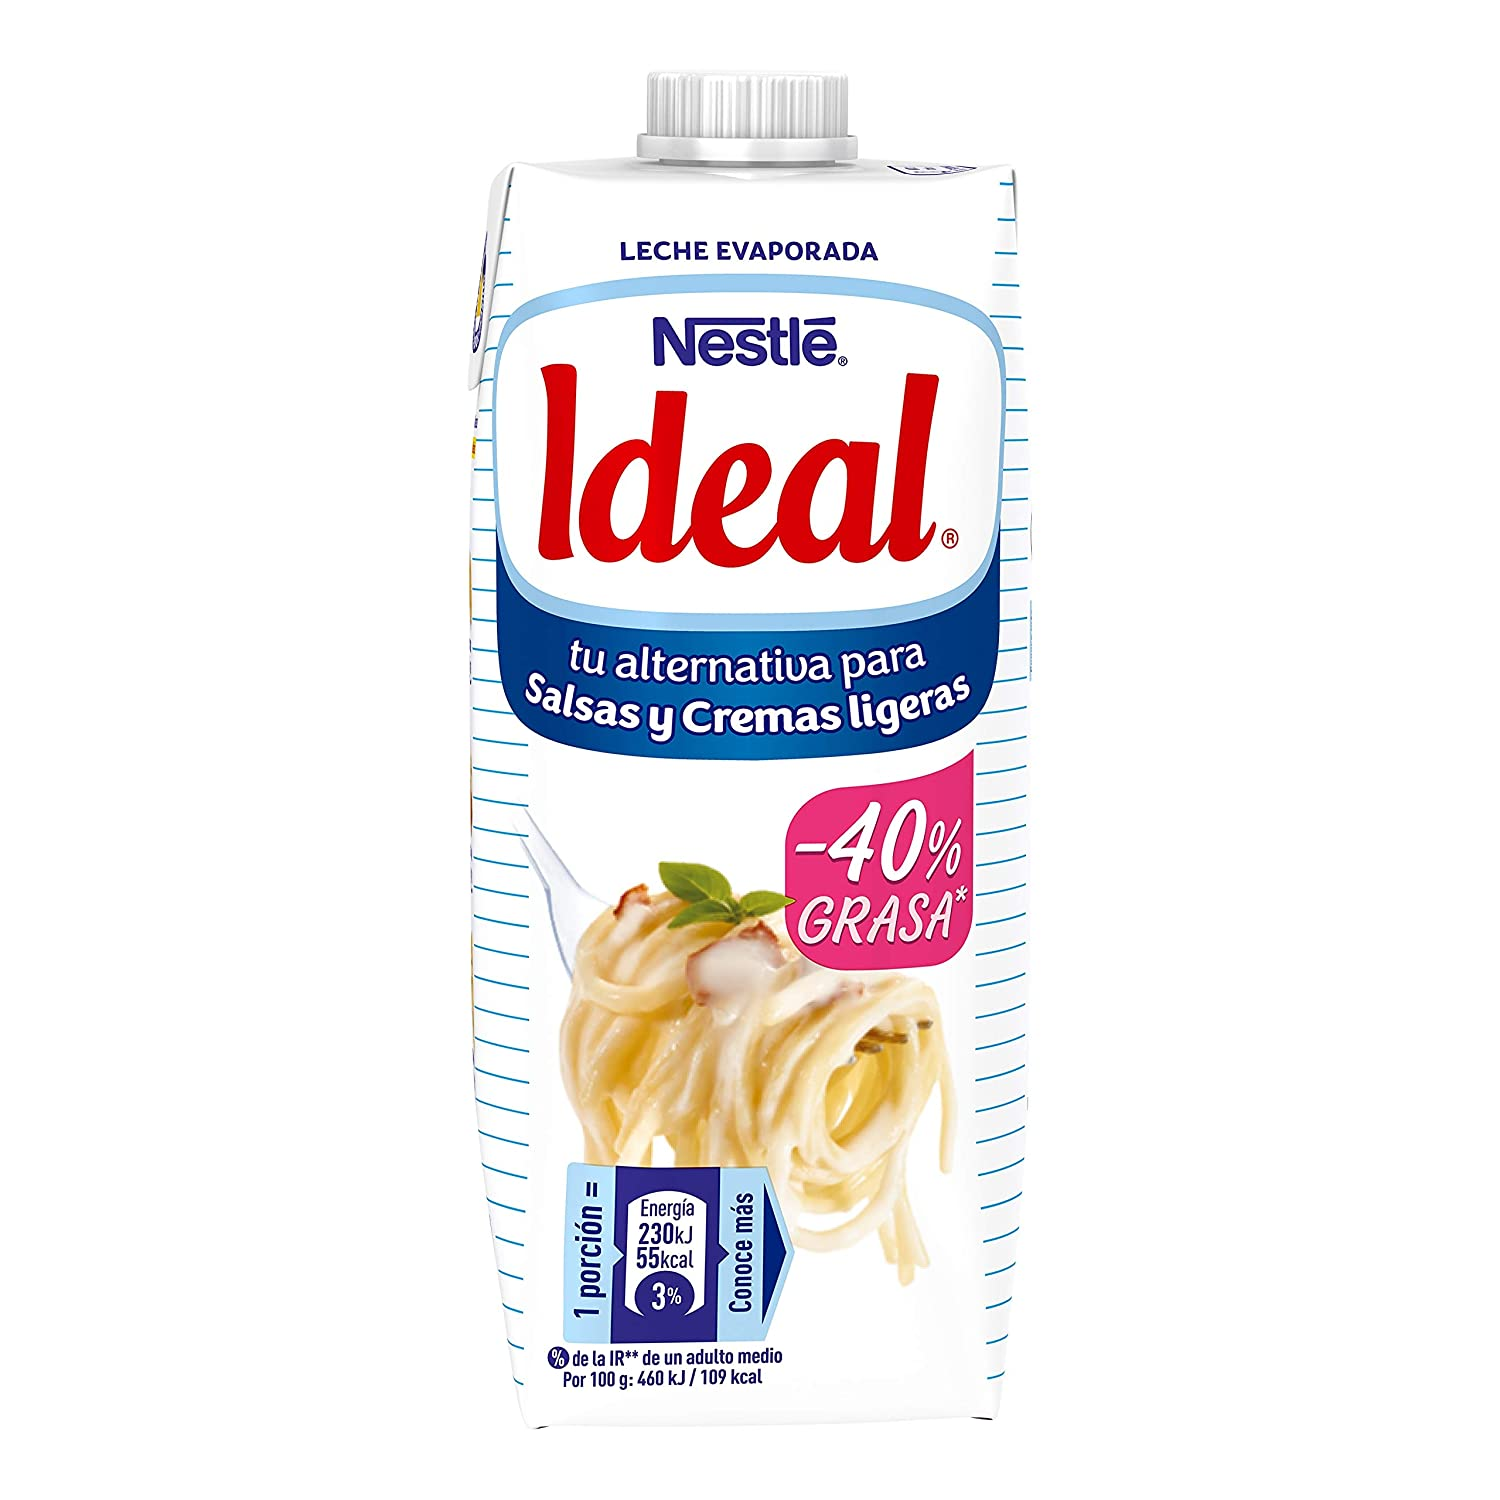 Nestlé - Ideal - Leche Evaporada - 500 ml (525 g): Amazon.es: Alimentación y bebidas